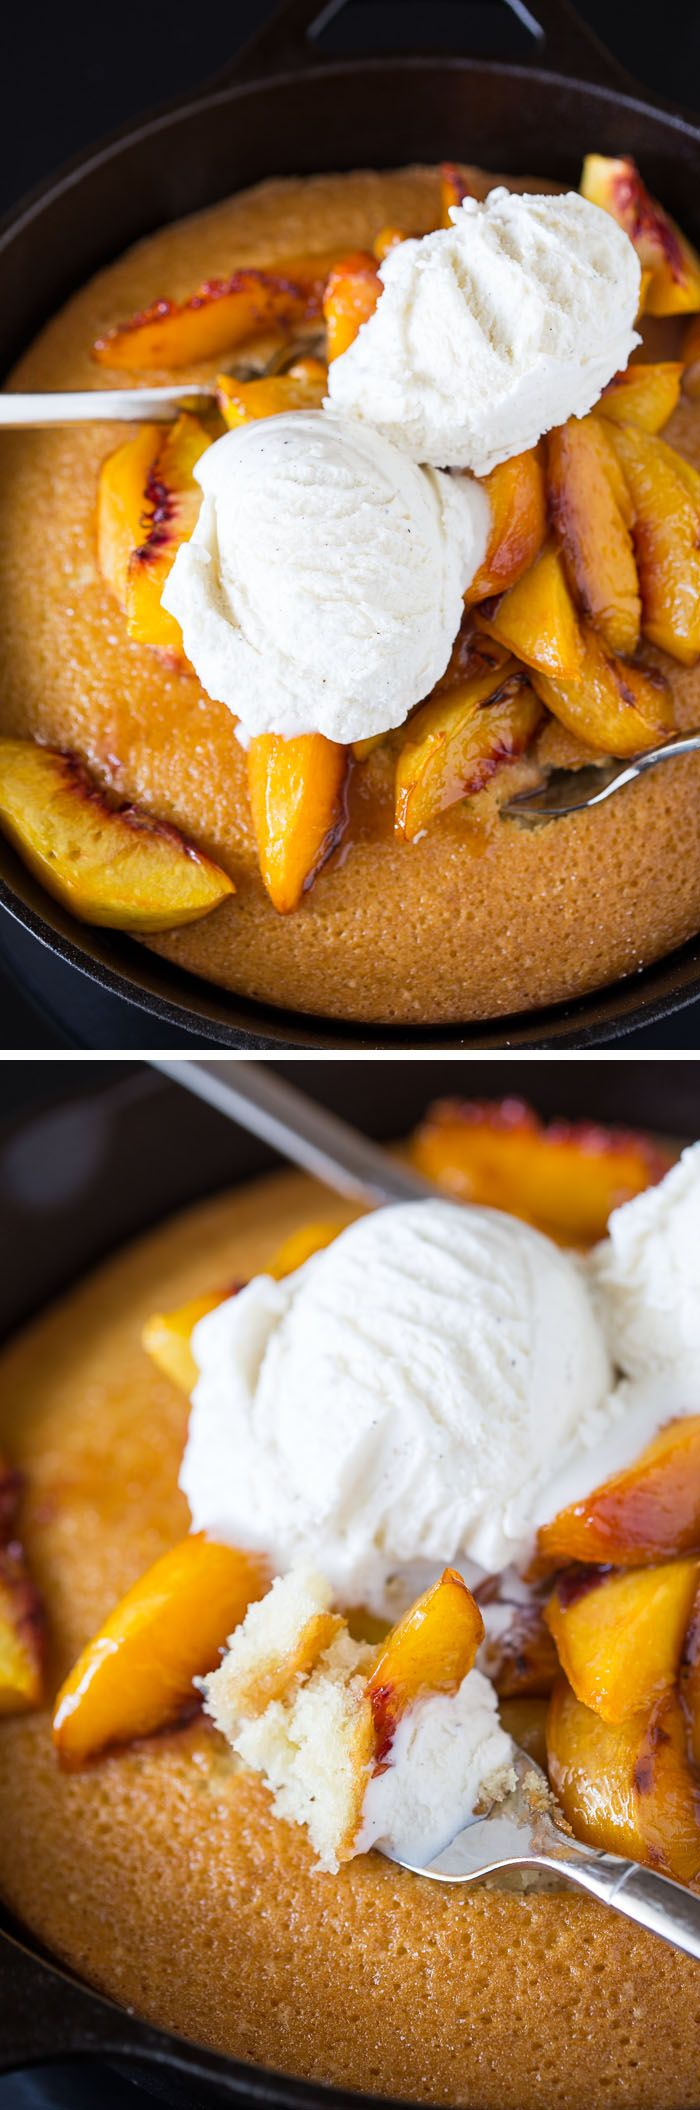 ... about cobbler on Pinterest | Homemade, Butter and Mini peach cobbler